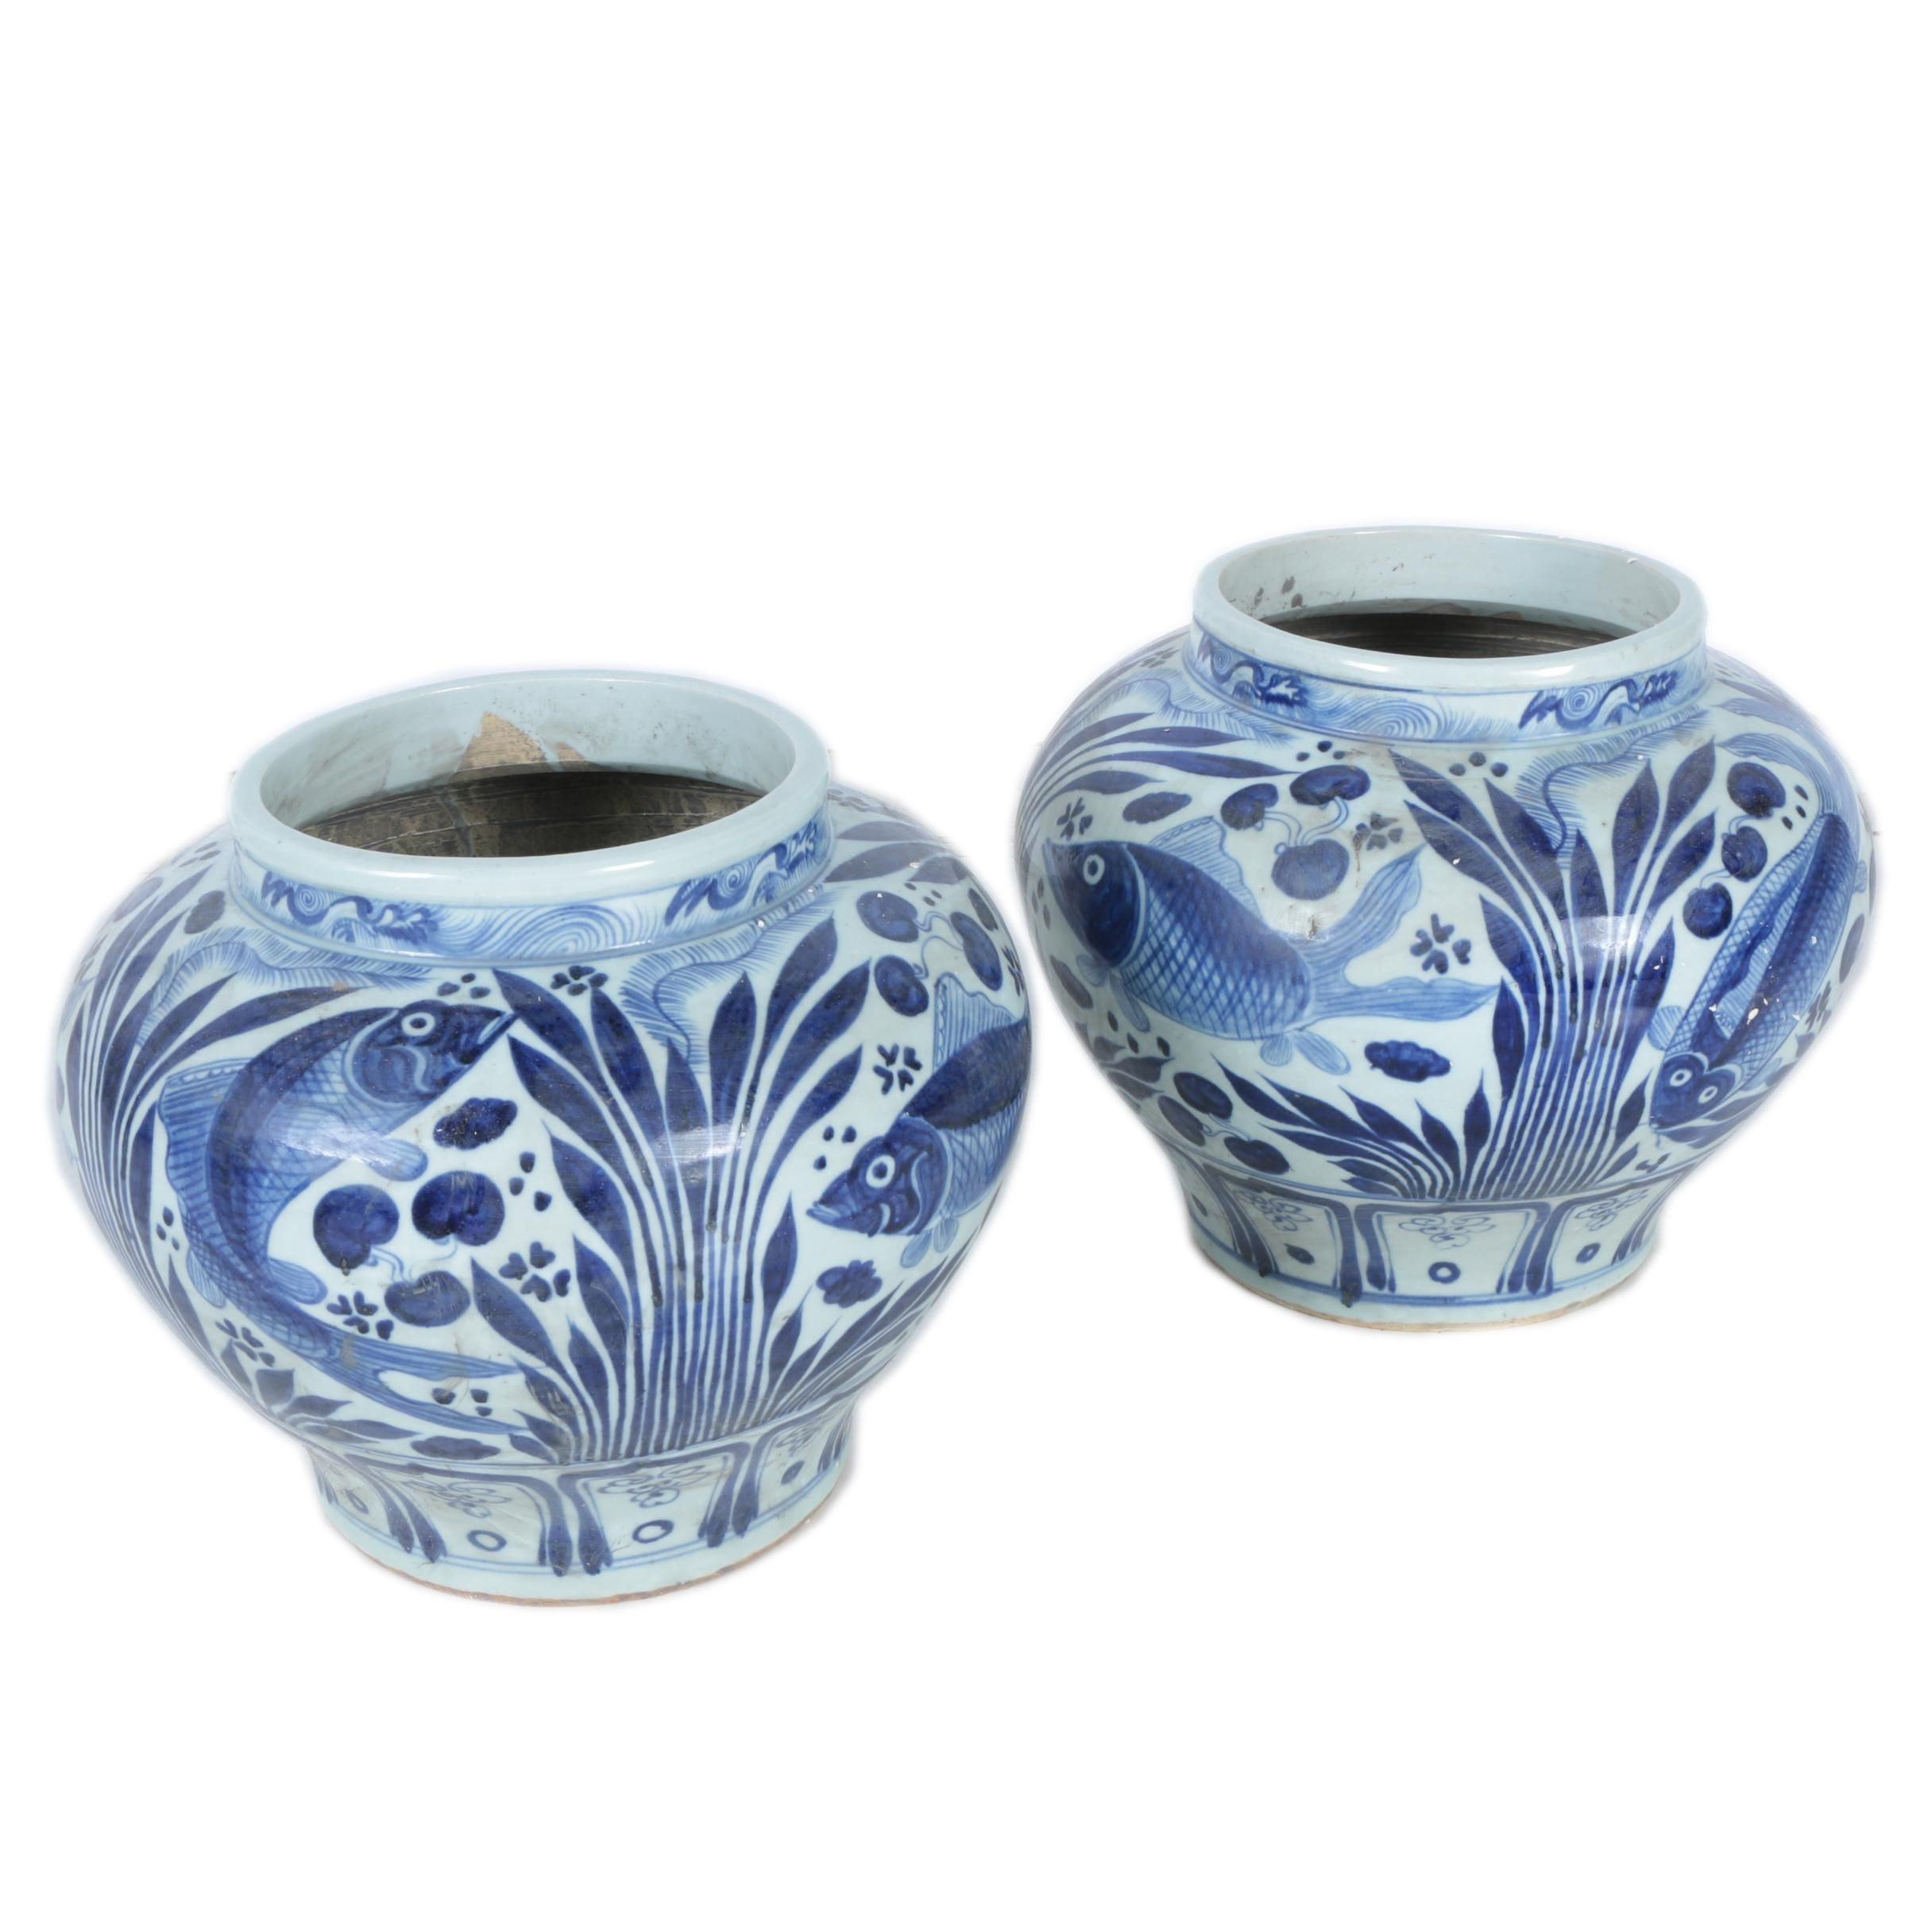 Blue and White Fish Motif Porcelain Vases